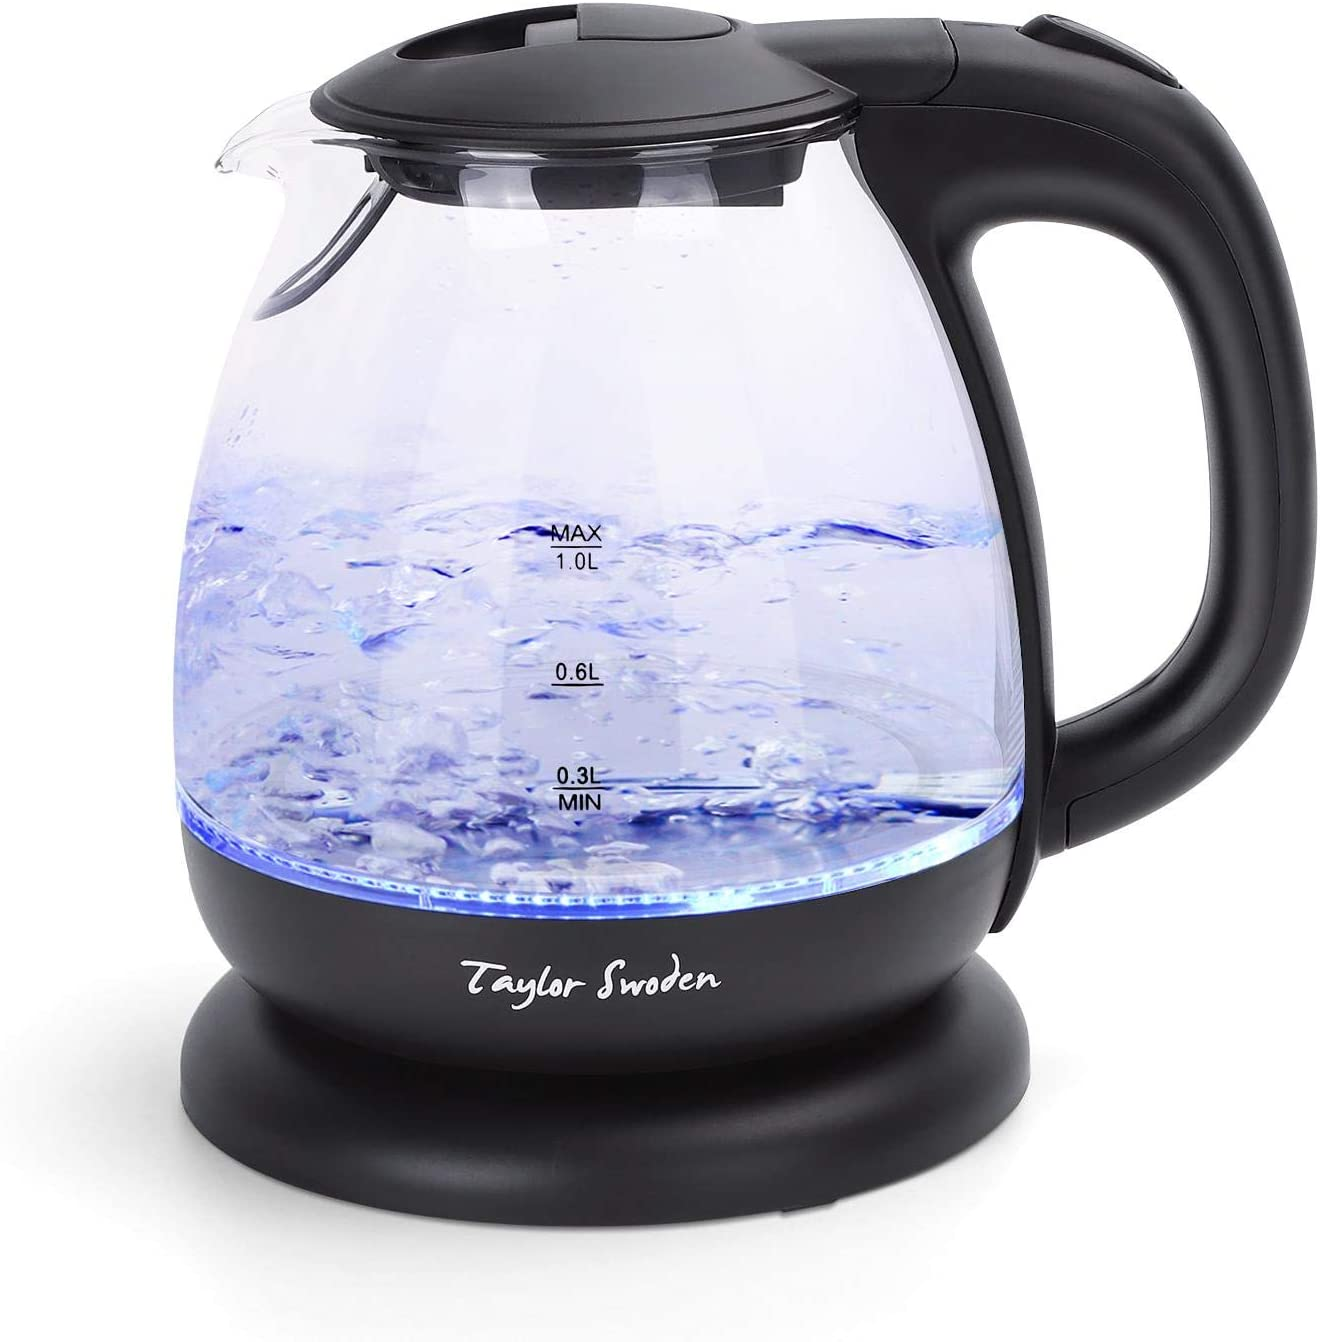 Small Glass Kettle Electric, Compact Mini Sized Electric Hot Water Kettle for Tea and Coffee 1L Black Taylor Swoden